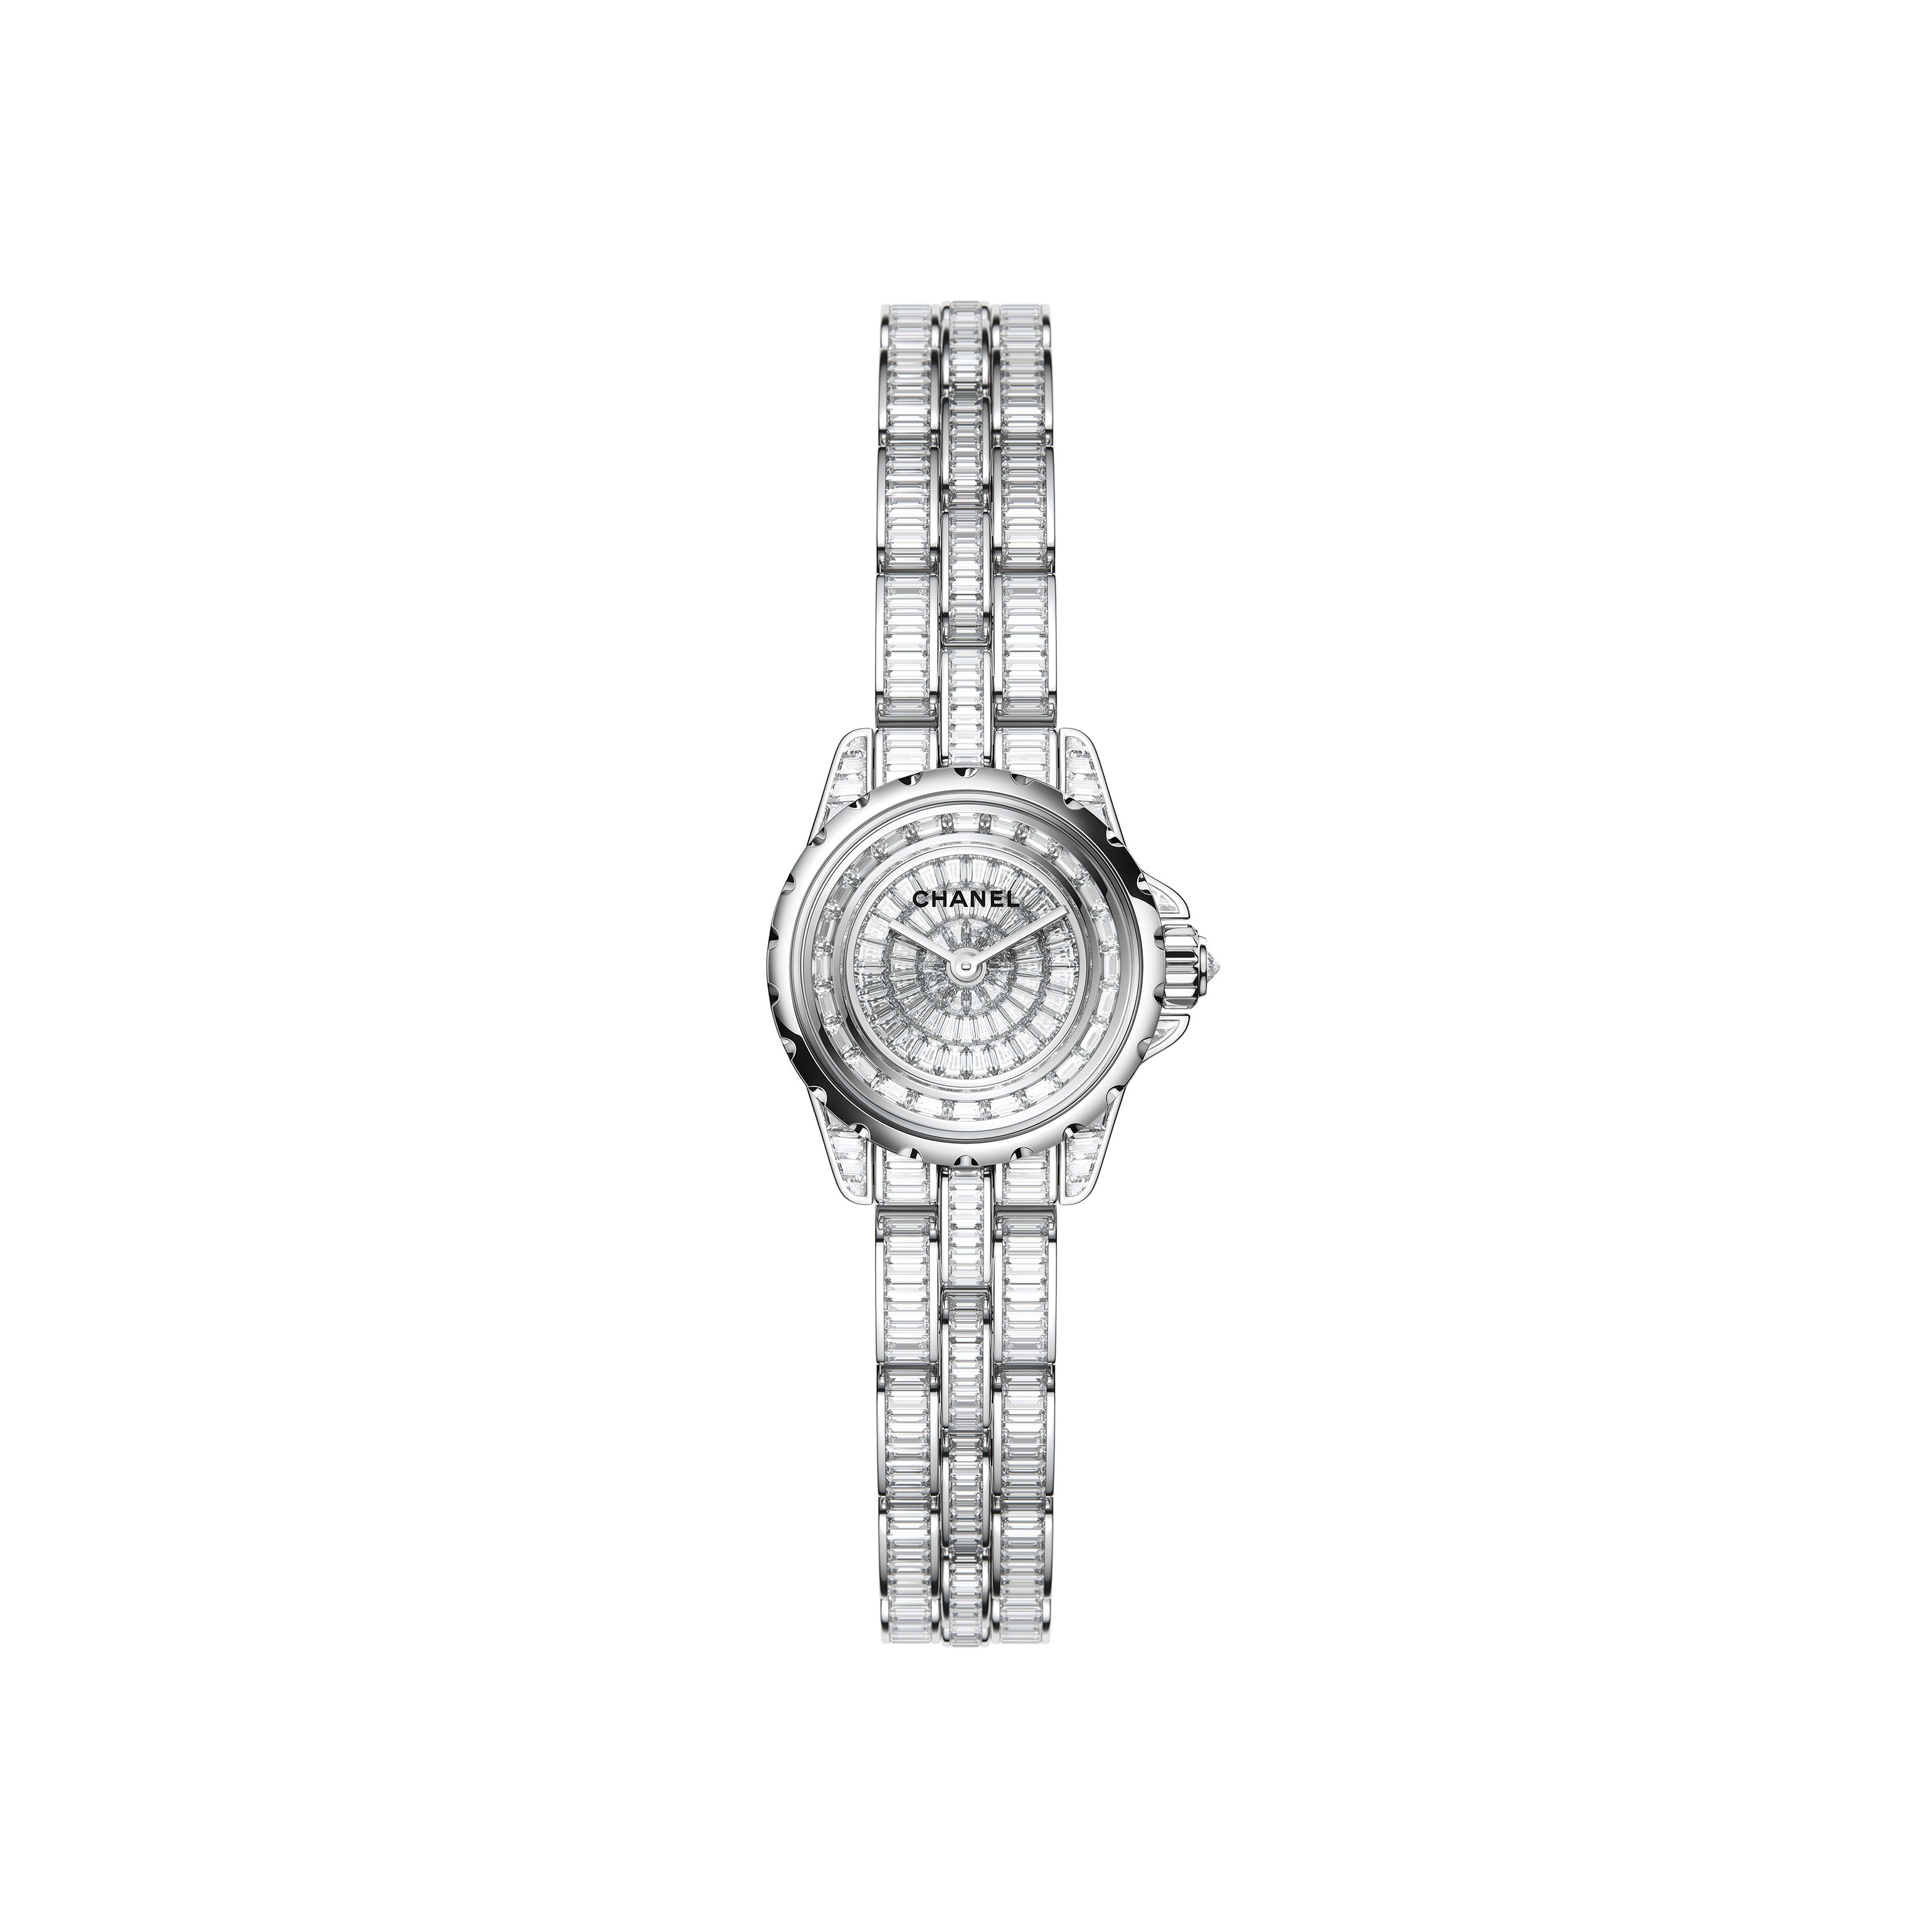 J12·XS High Jewellery Watch - White gold, case, dial, flange and bracelet set with baguette-cut diamonds - CHANEL - Default view - see standard sized version